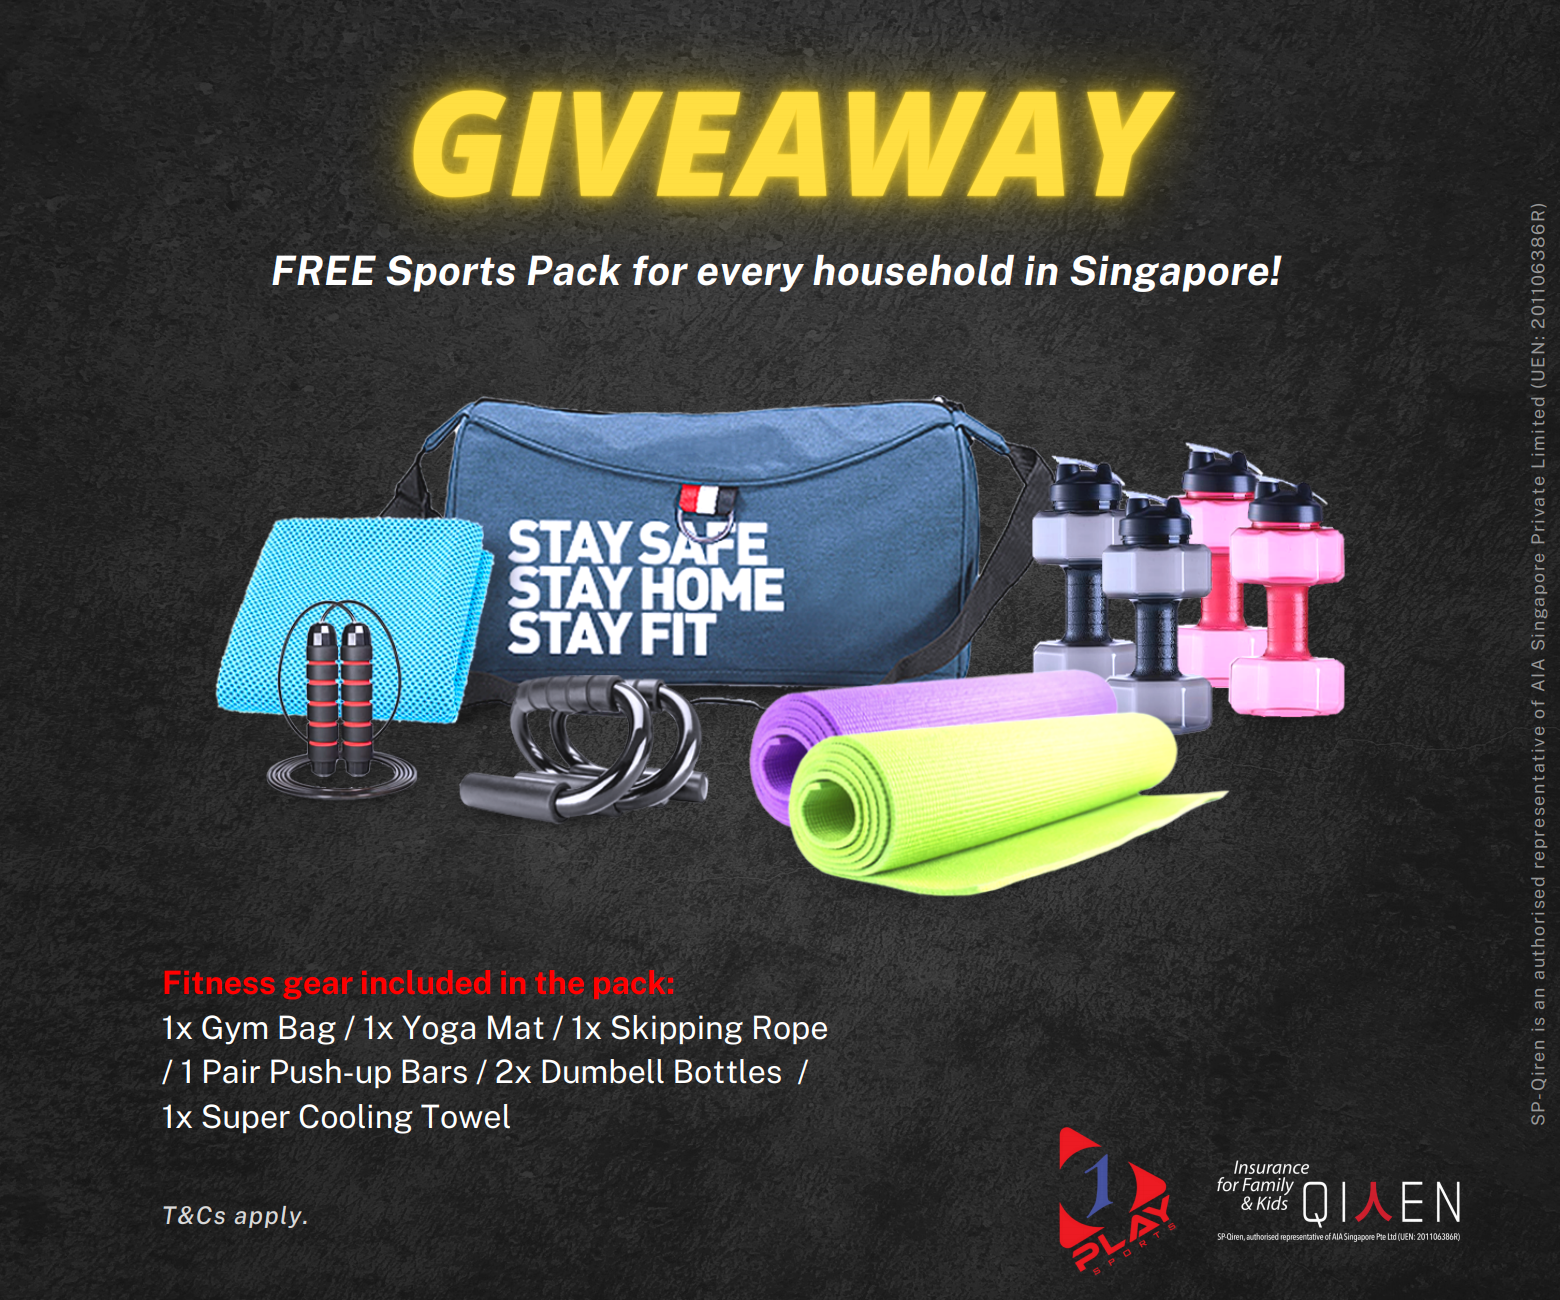 FREE Sports Pack for every household in Singapore!